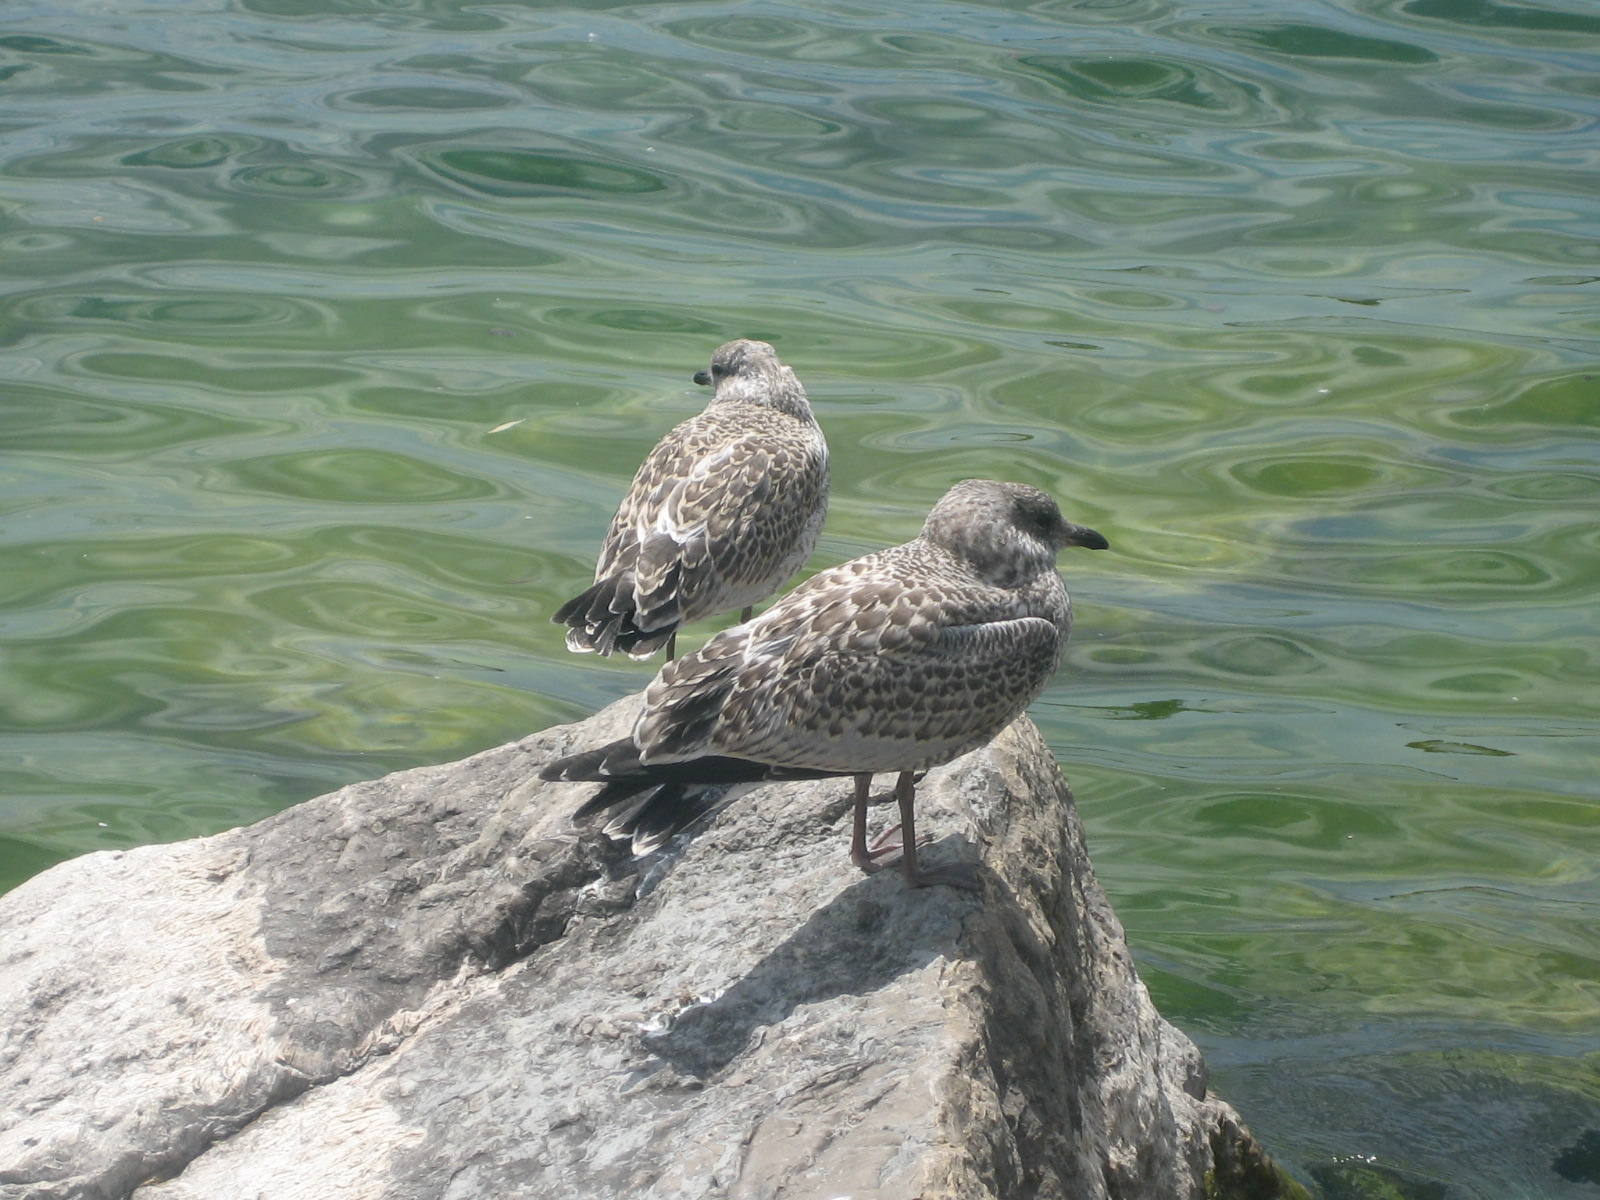 file bird on rocks near shoreline jpg wikimedia commons